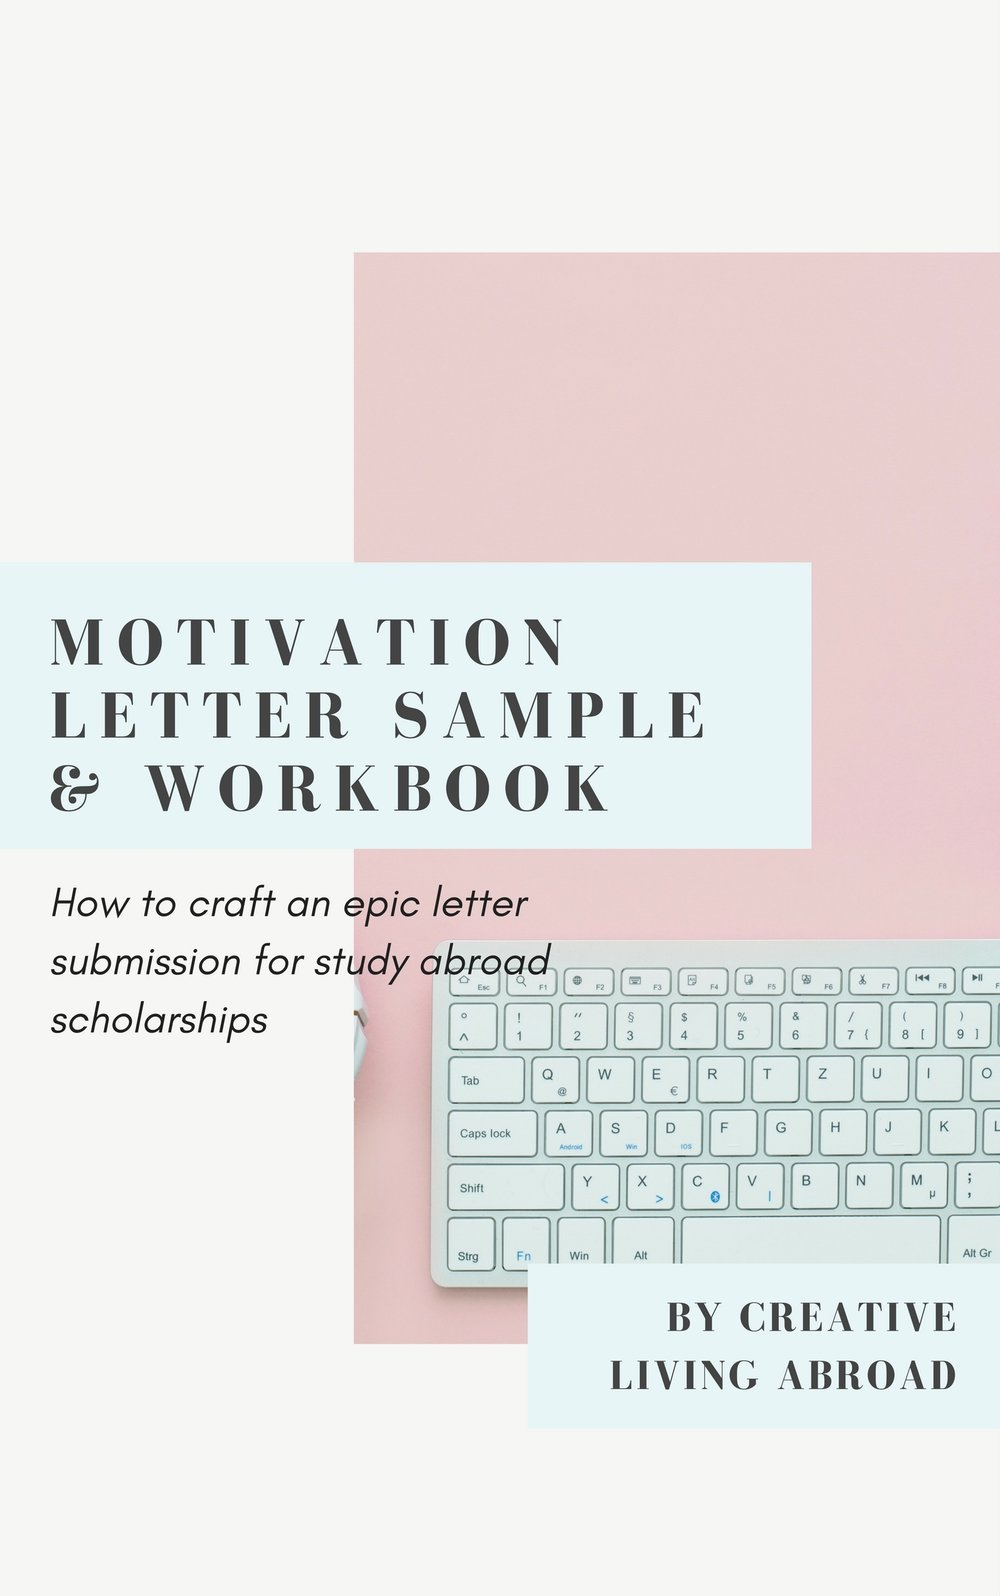 motivation letter workbook for scholarship applications